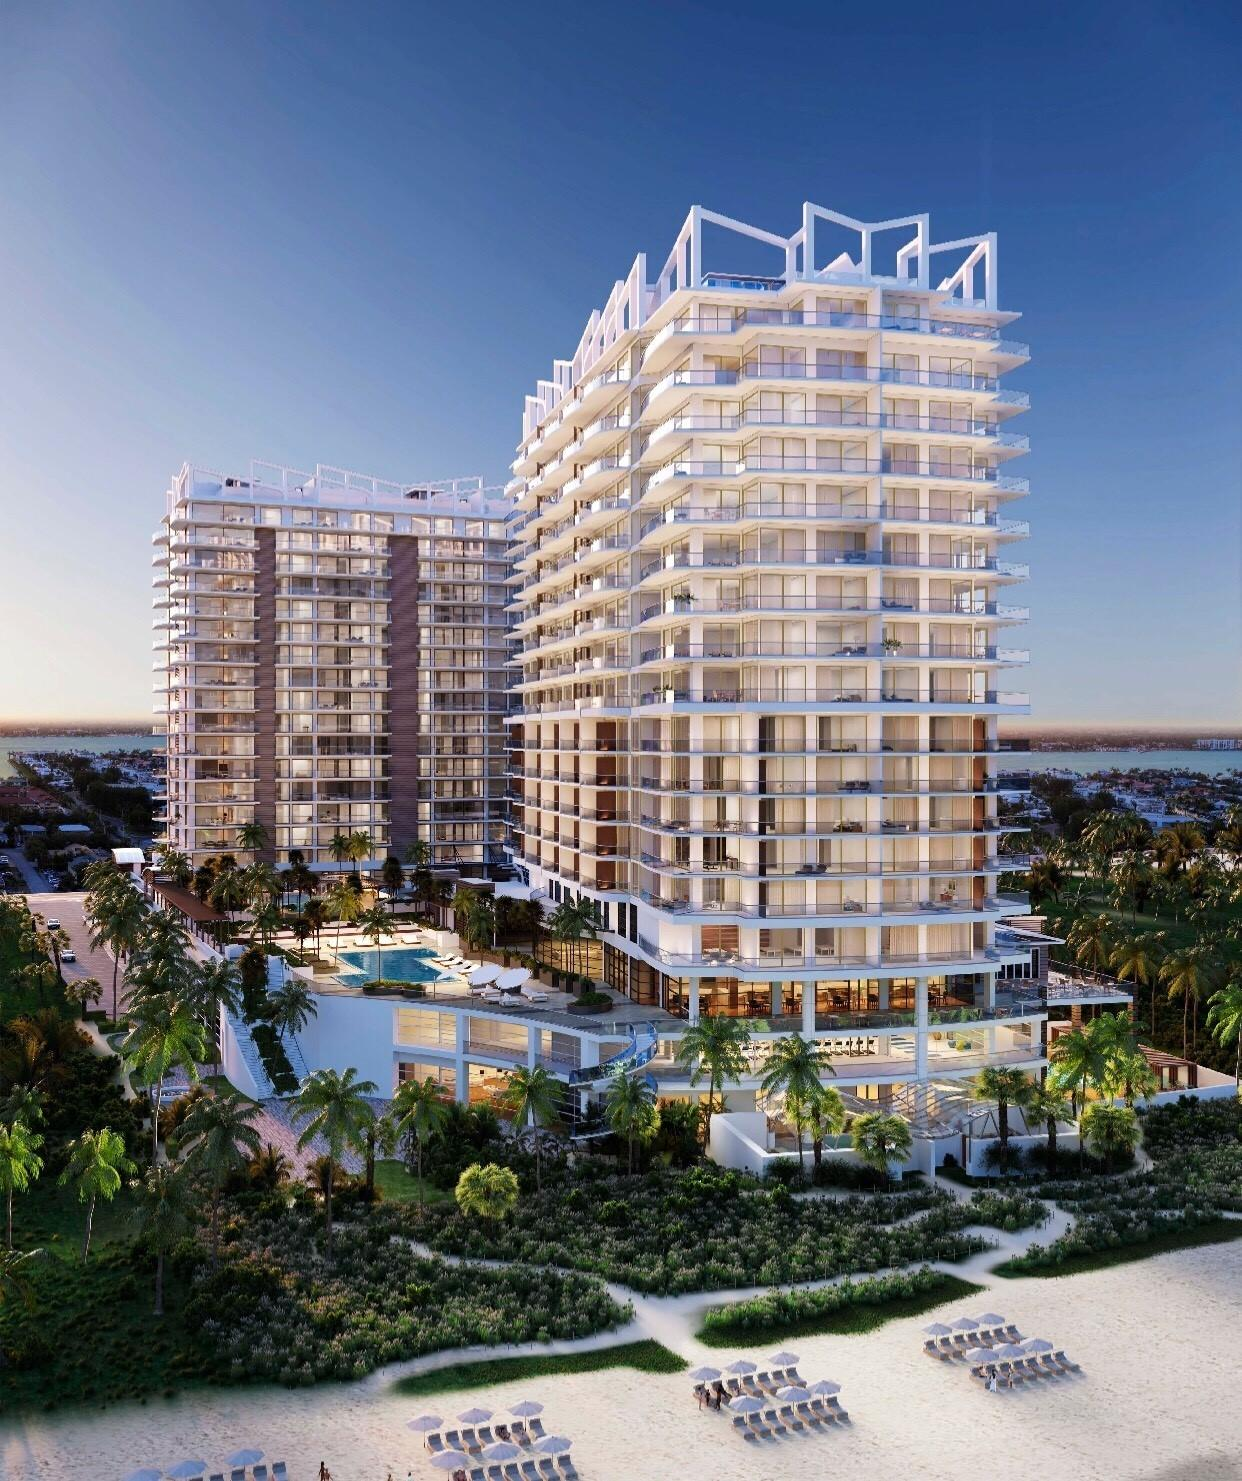 AMRIT OCEAN RESORT & RESIDENCE REALTY